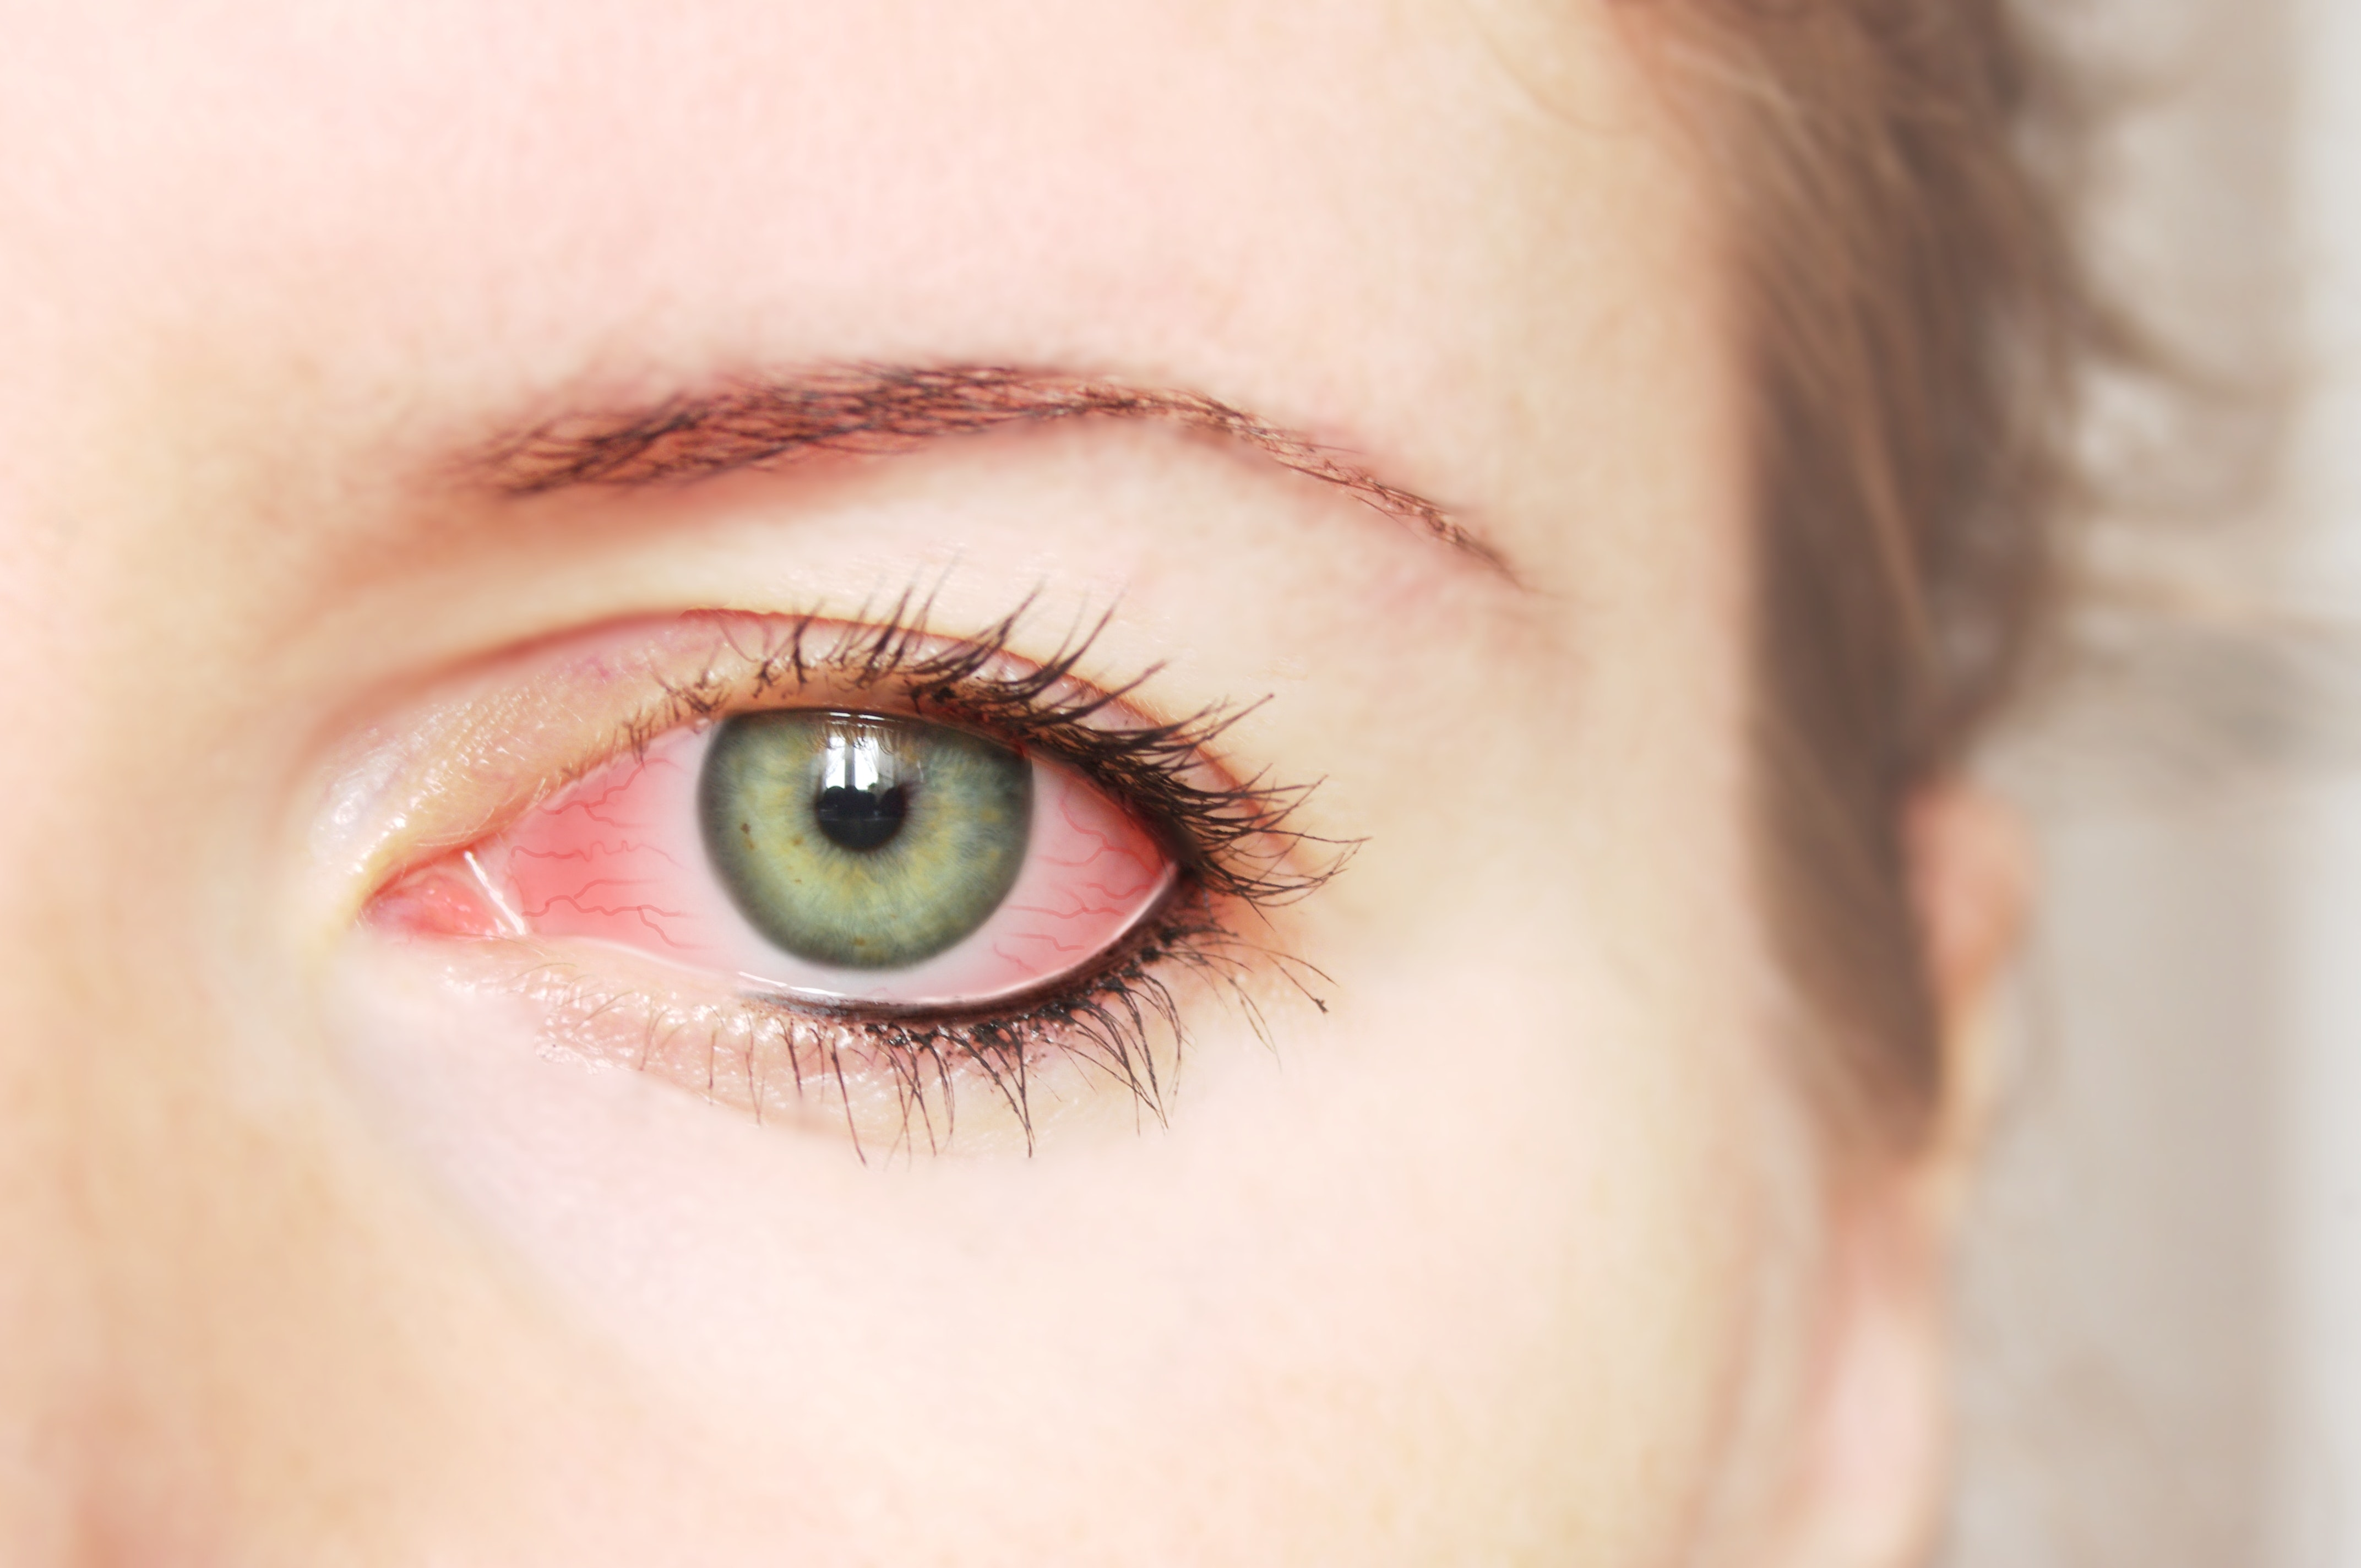 An image depicting a person suffering from feeling of something in the eye symptoms